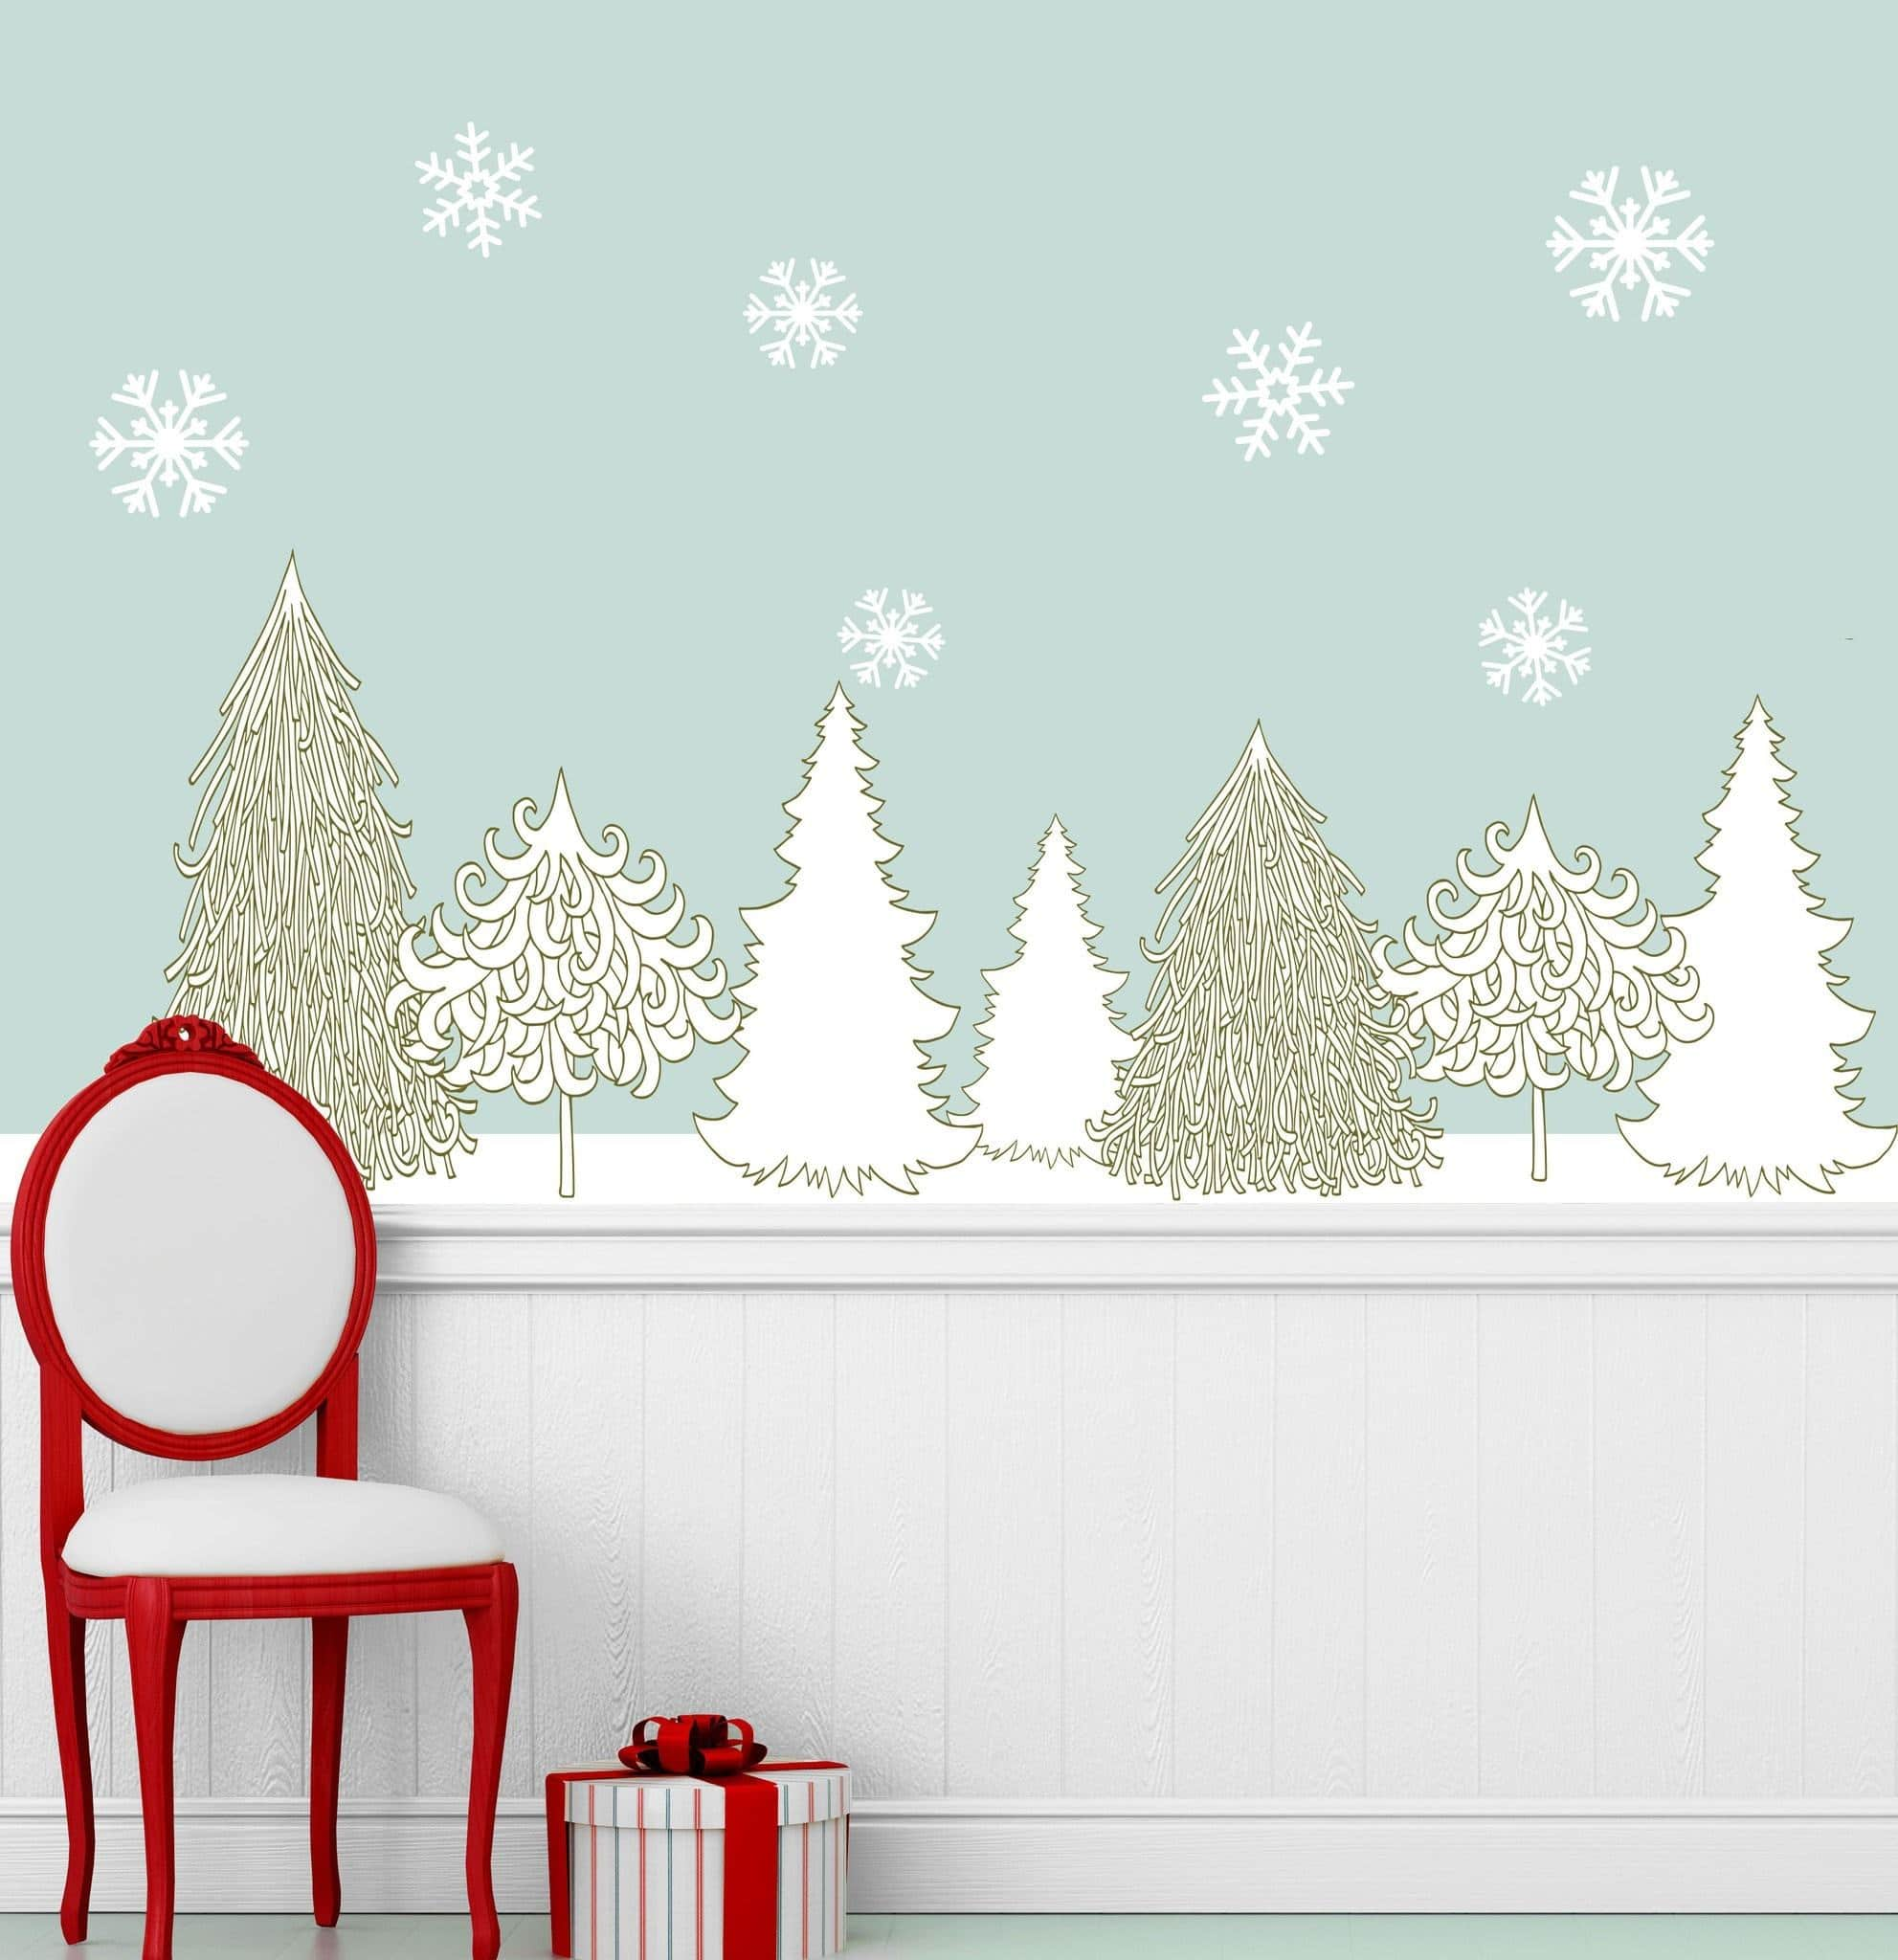 Winter Wall Decals